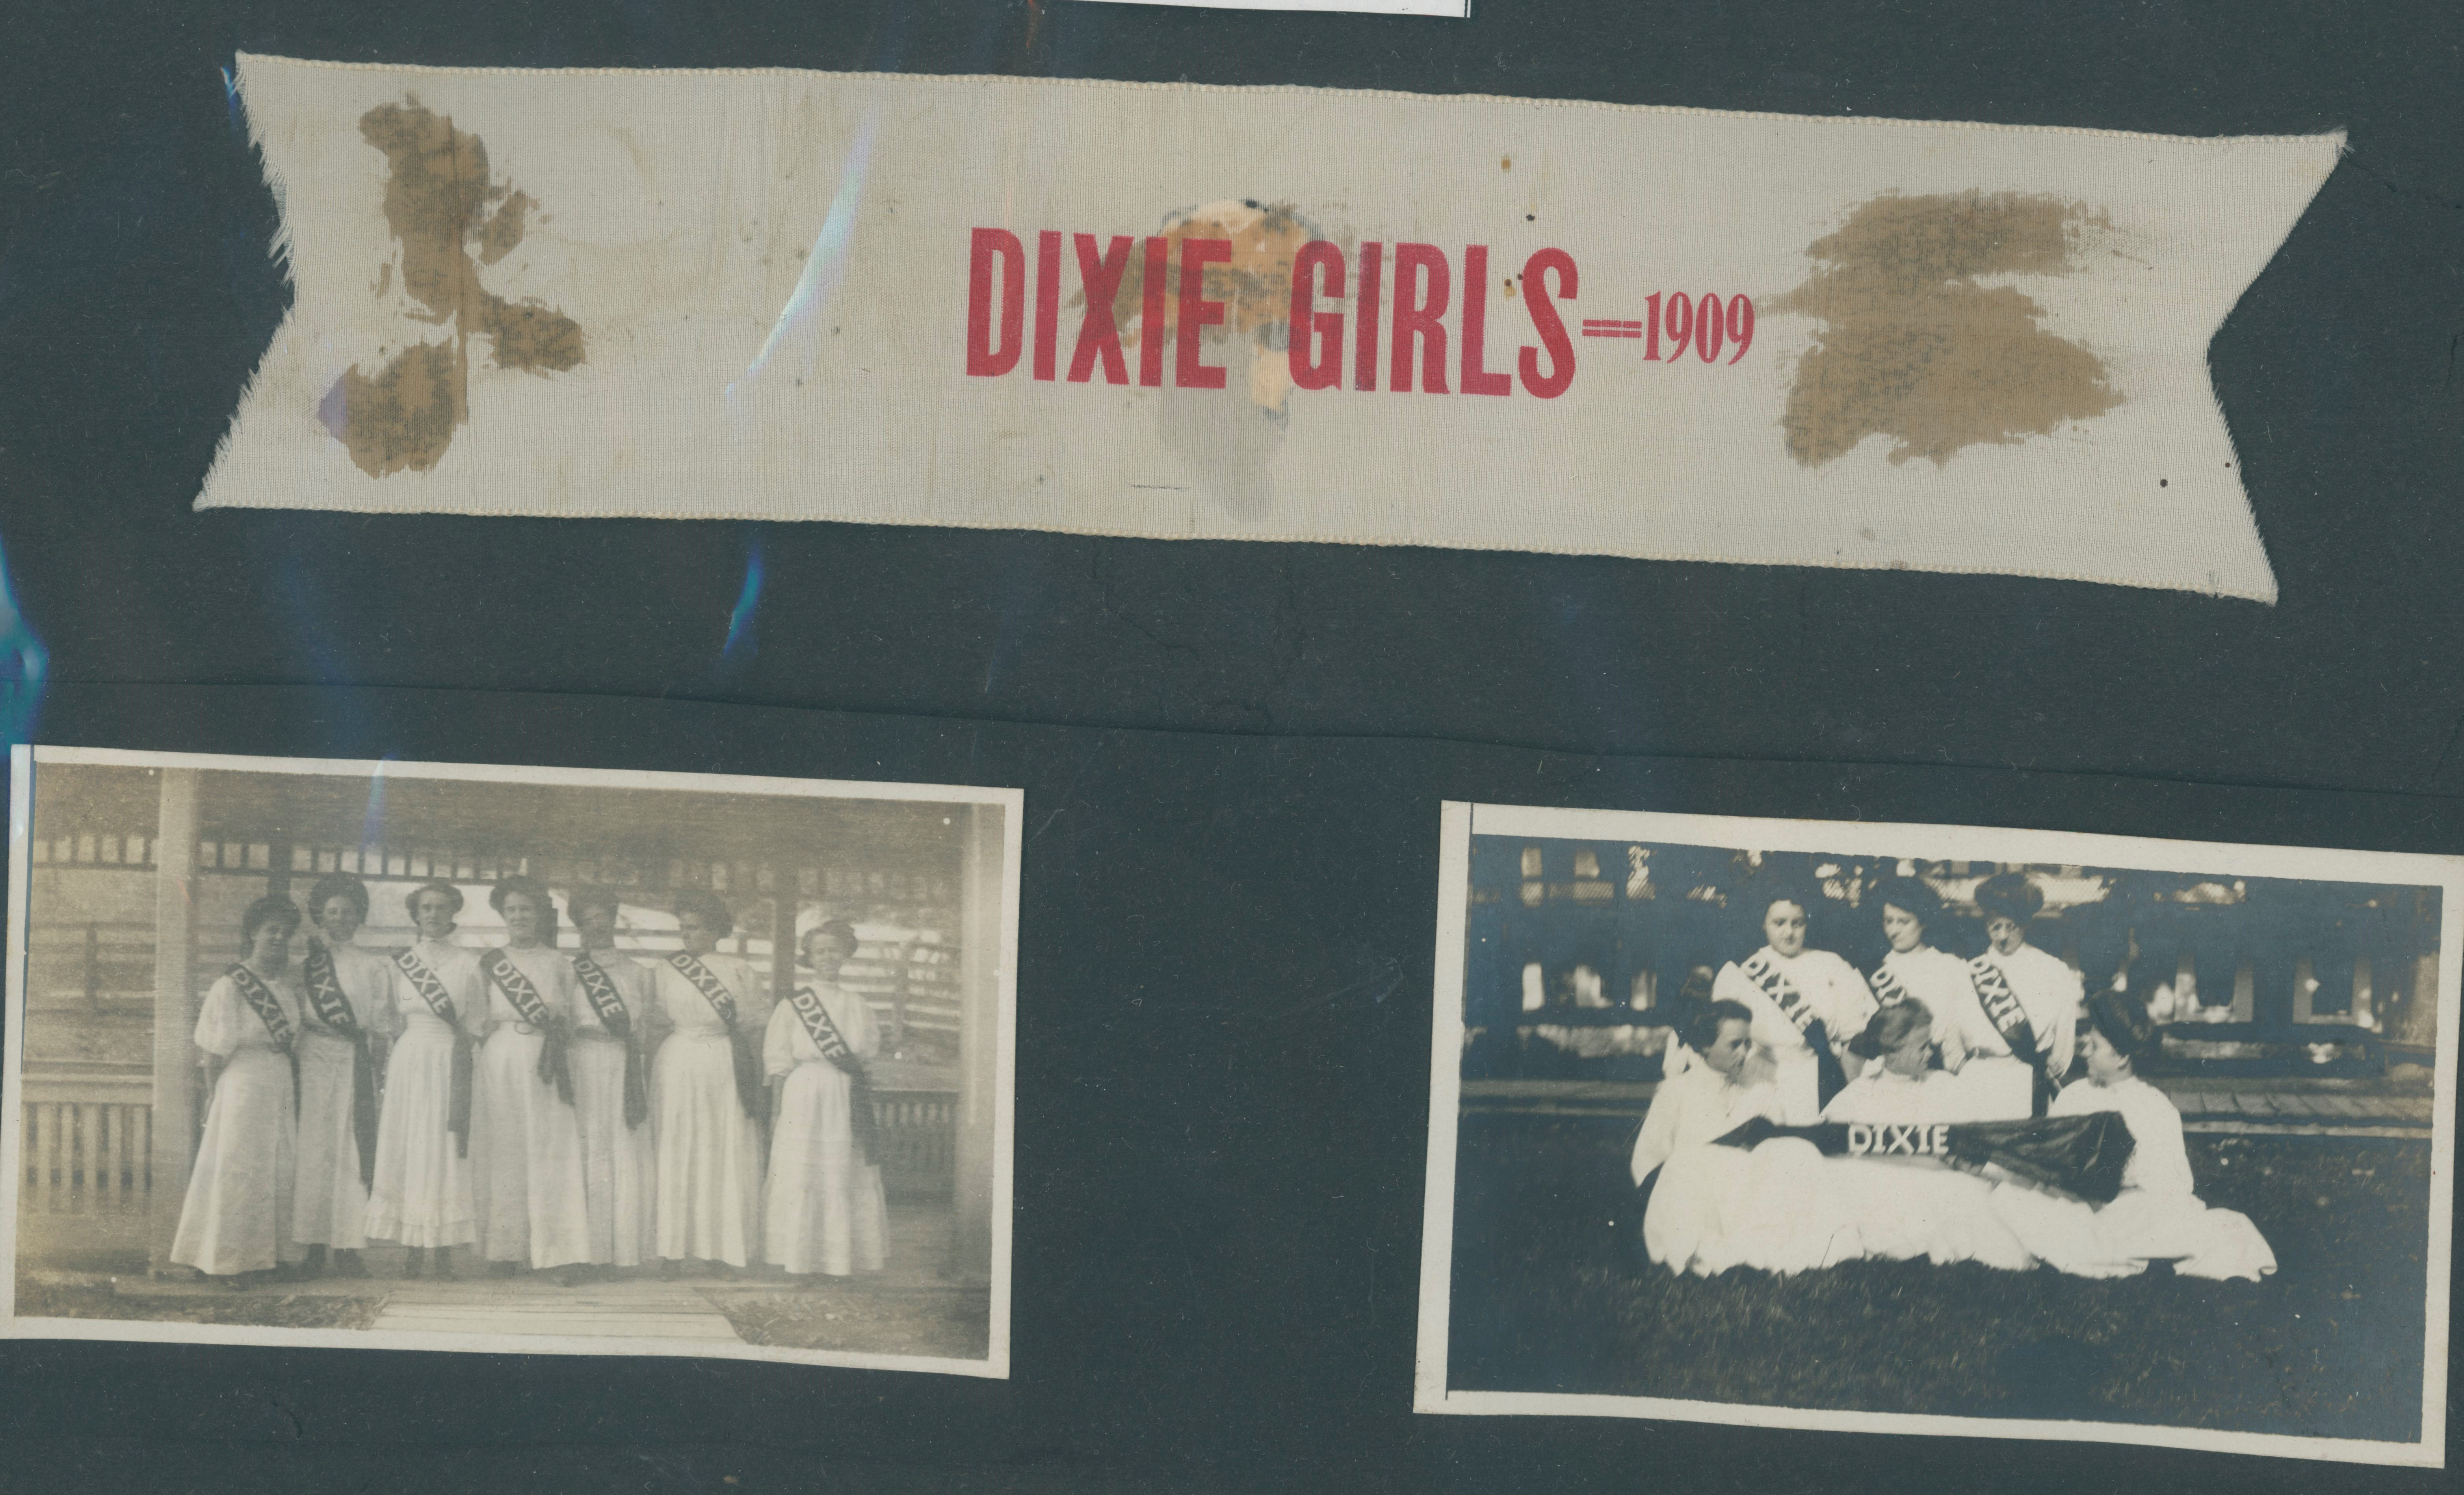 Photographs and ribbon from a Dixie Girls performance in New Market, Virginia, 1909.